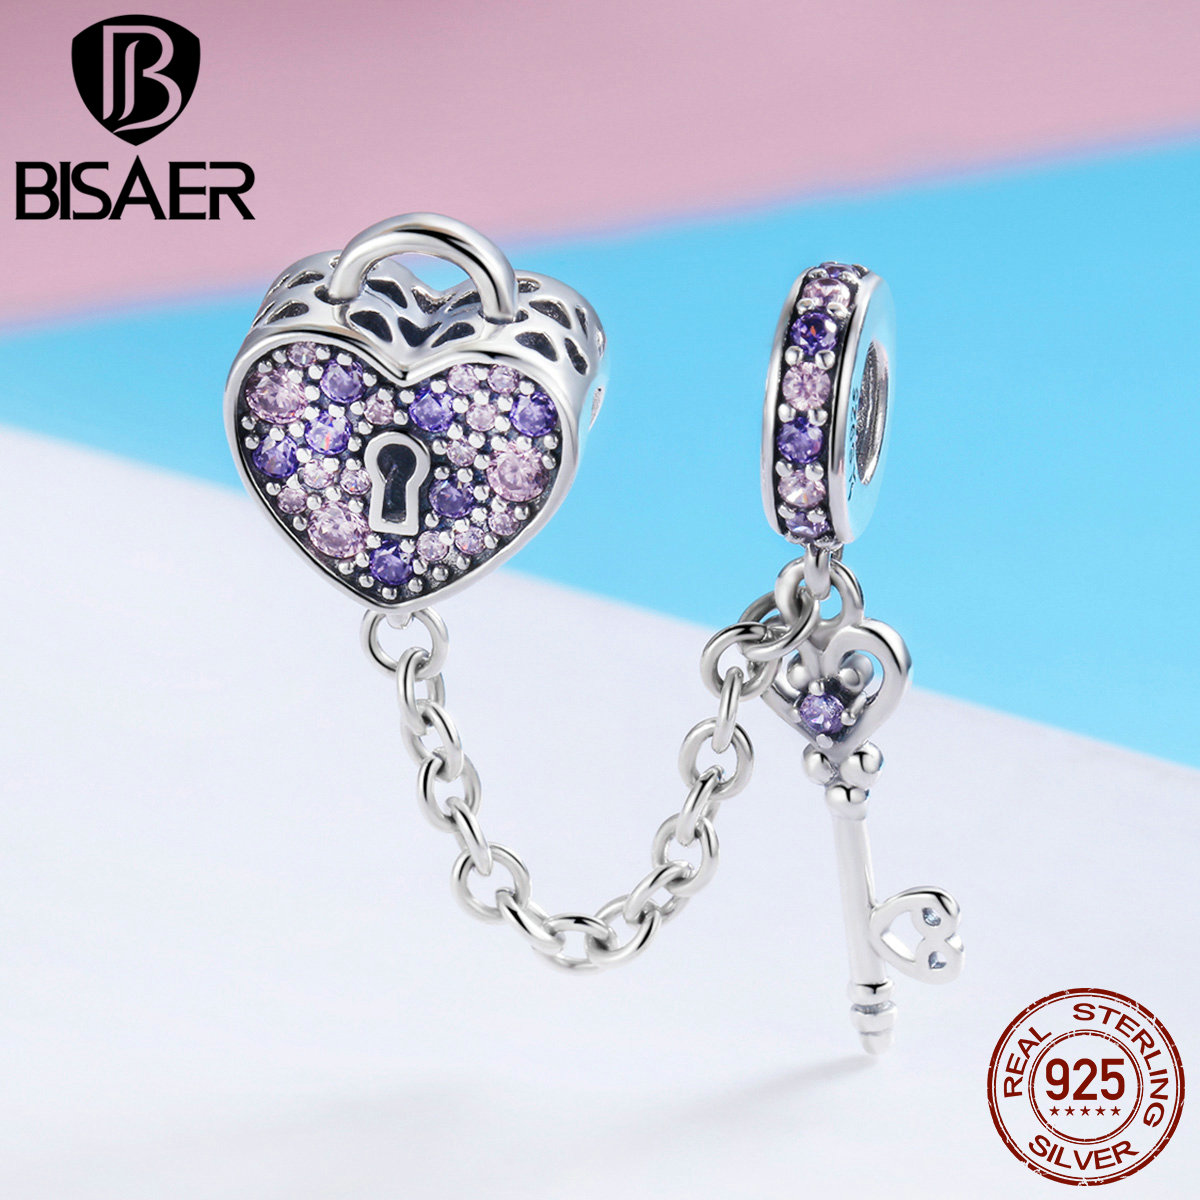 BISAER Real 925 Sterling Silver Key Lock of Heart Charms Pink CZ Heart Beads Fit for Women Bracelet DIY Jewelry Making ECC772 bisaer 7pcs 925 sterling silver heart key and locket heart pendant brand charm bracelet for women wedding silver bangle gxb811